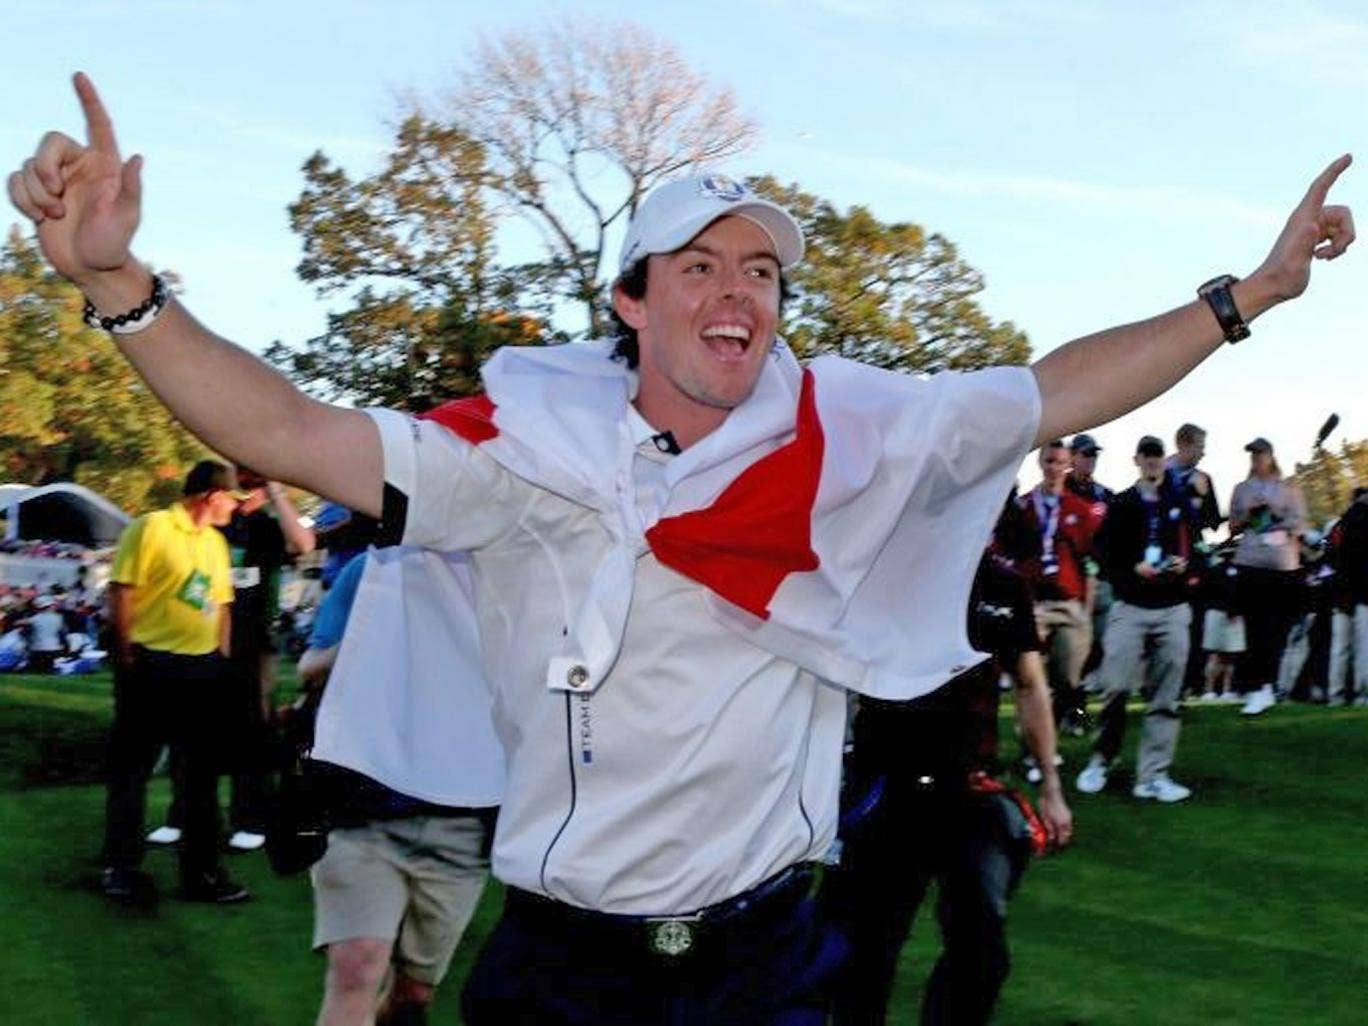 McIlroy's image was enhanced by Europe's Ryder Cup victory last year